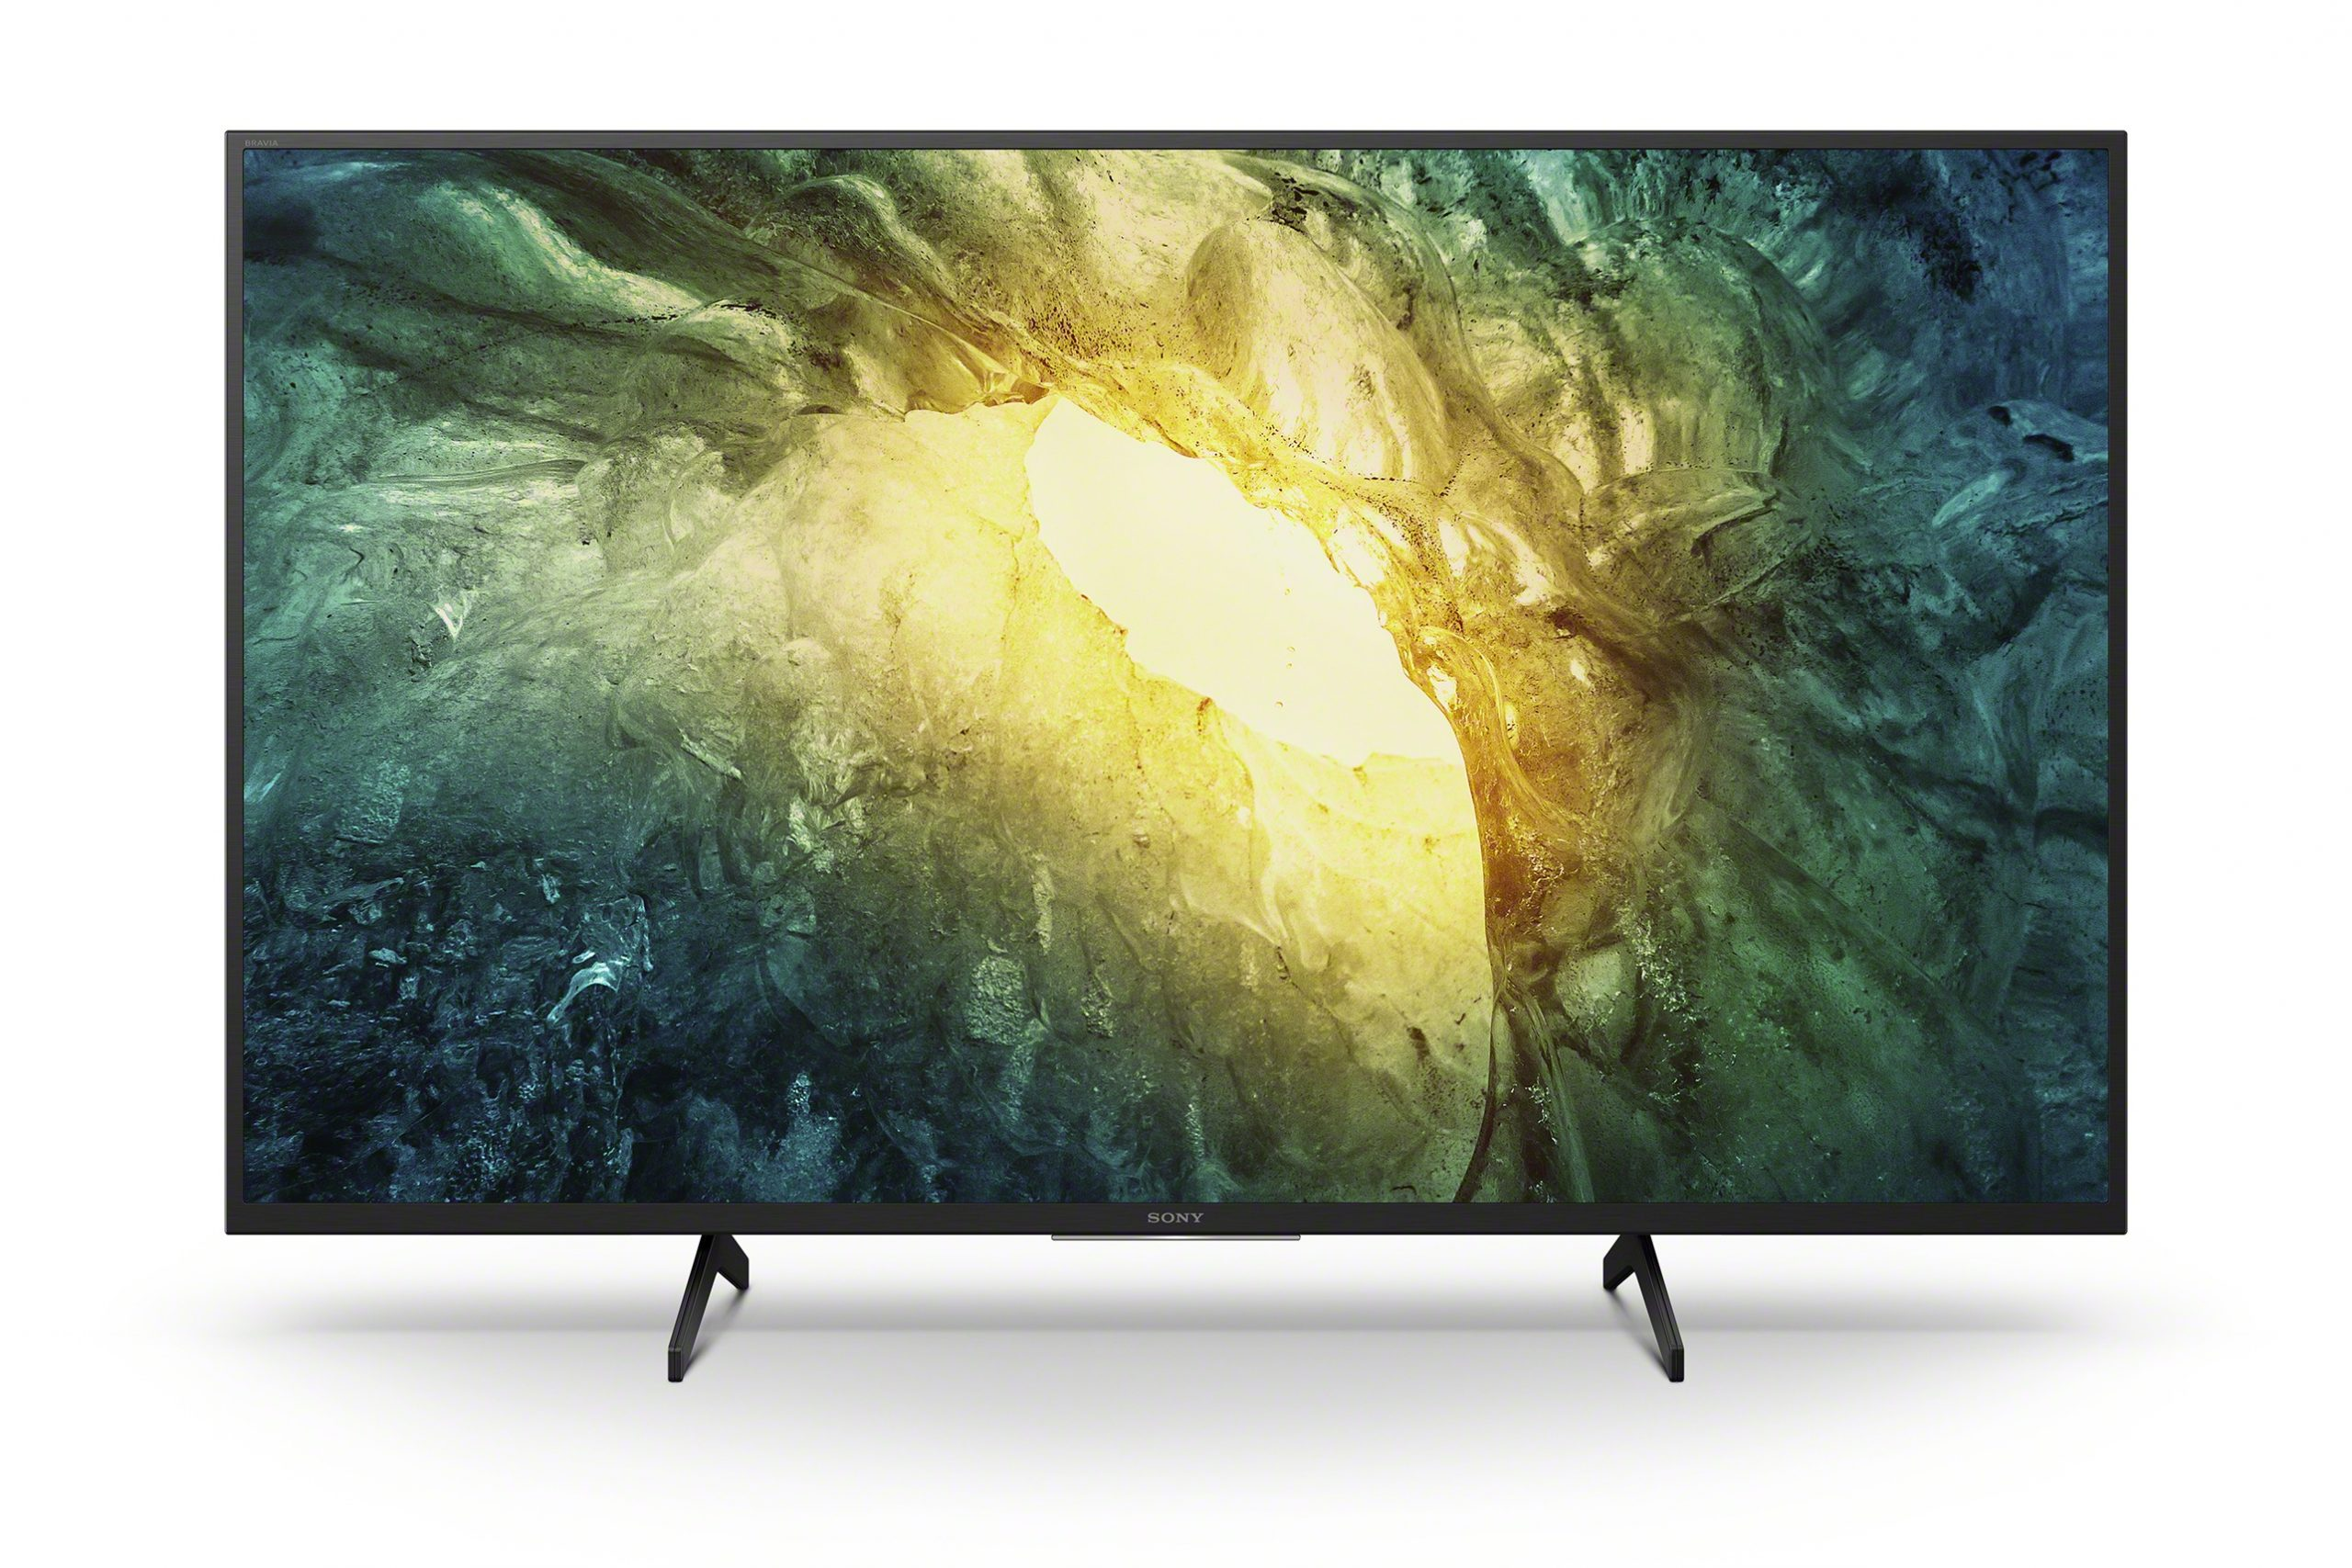 Sony KD-55X7056 55 inch UHD TV